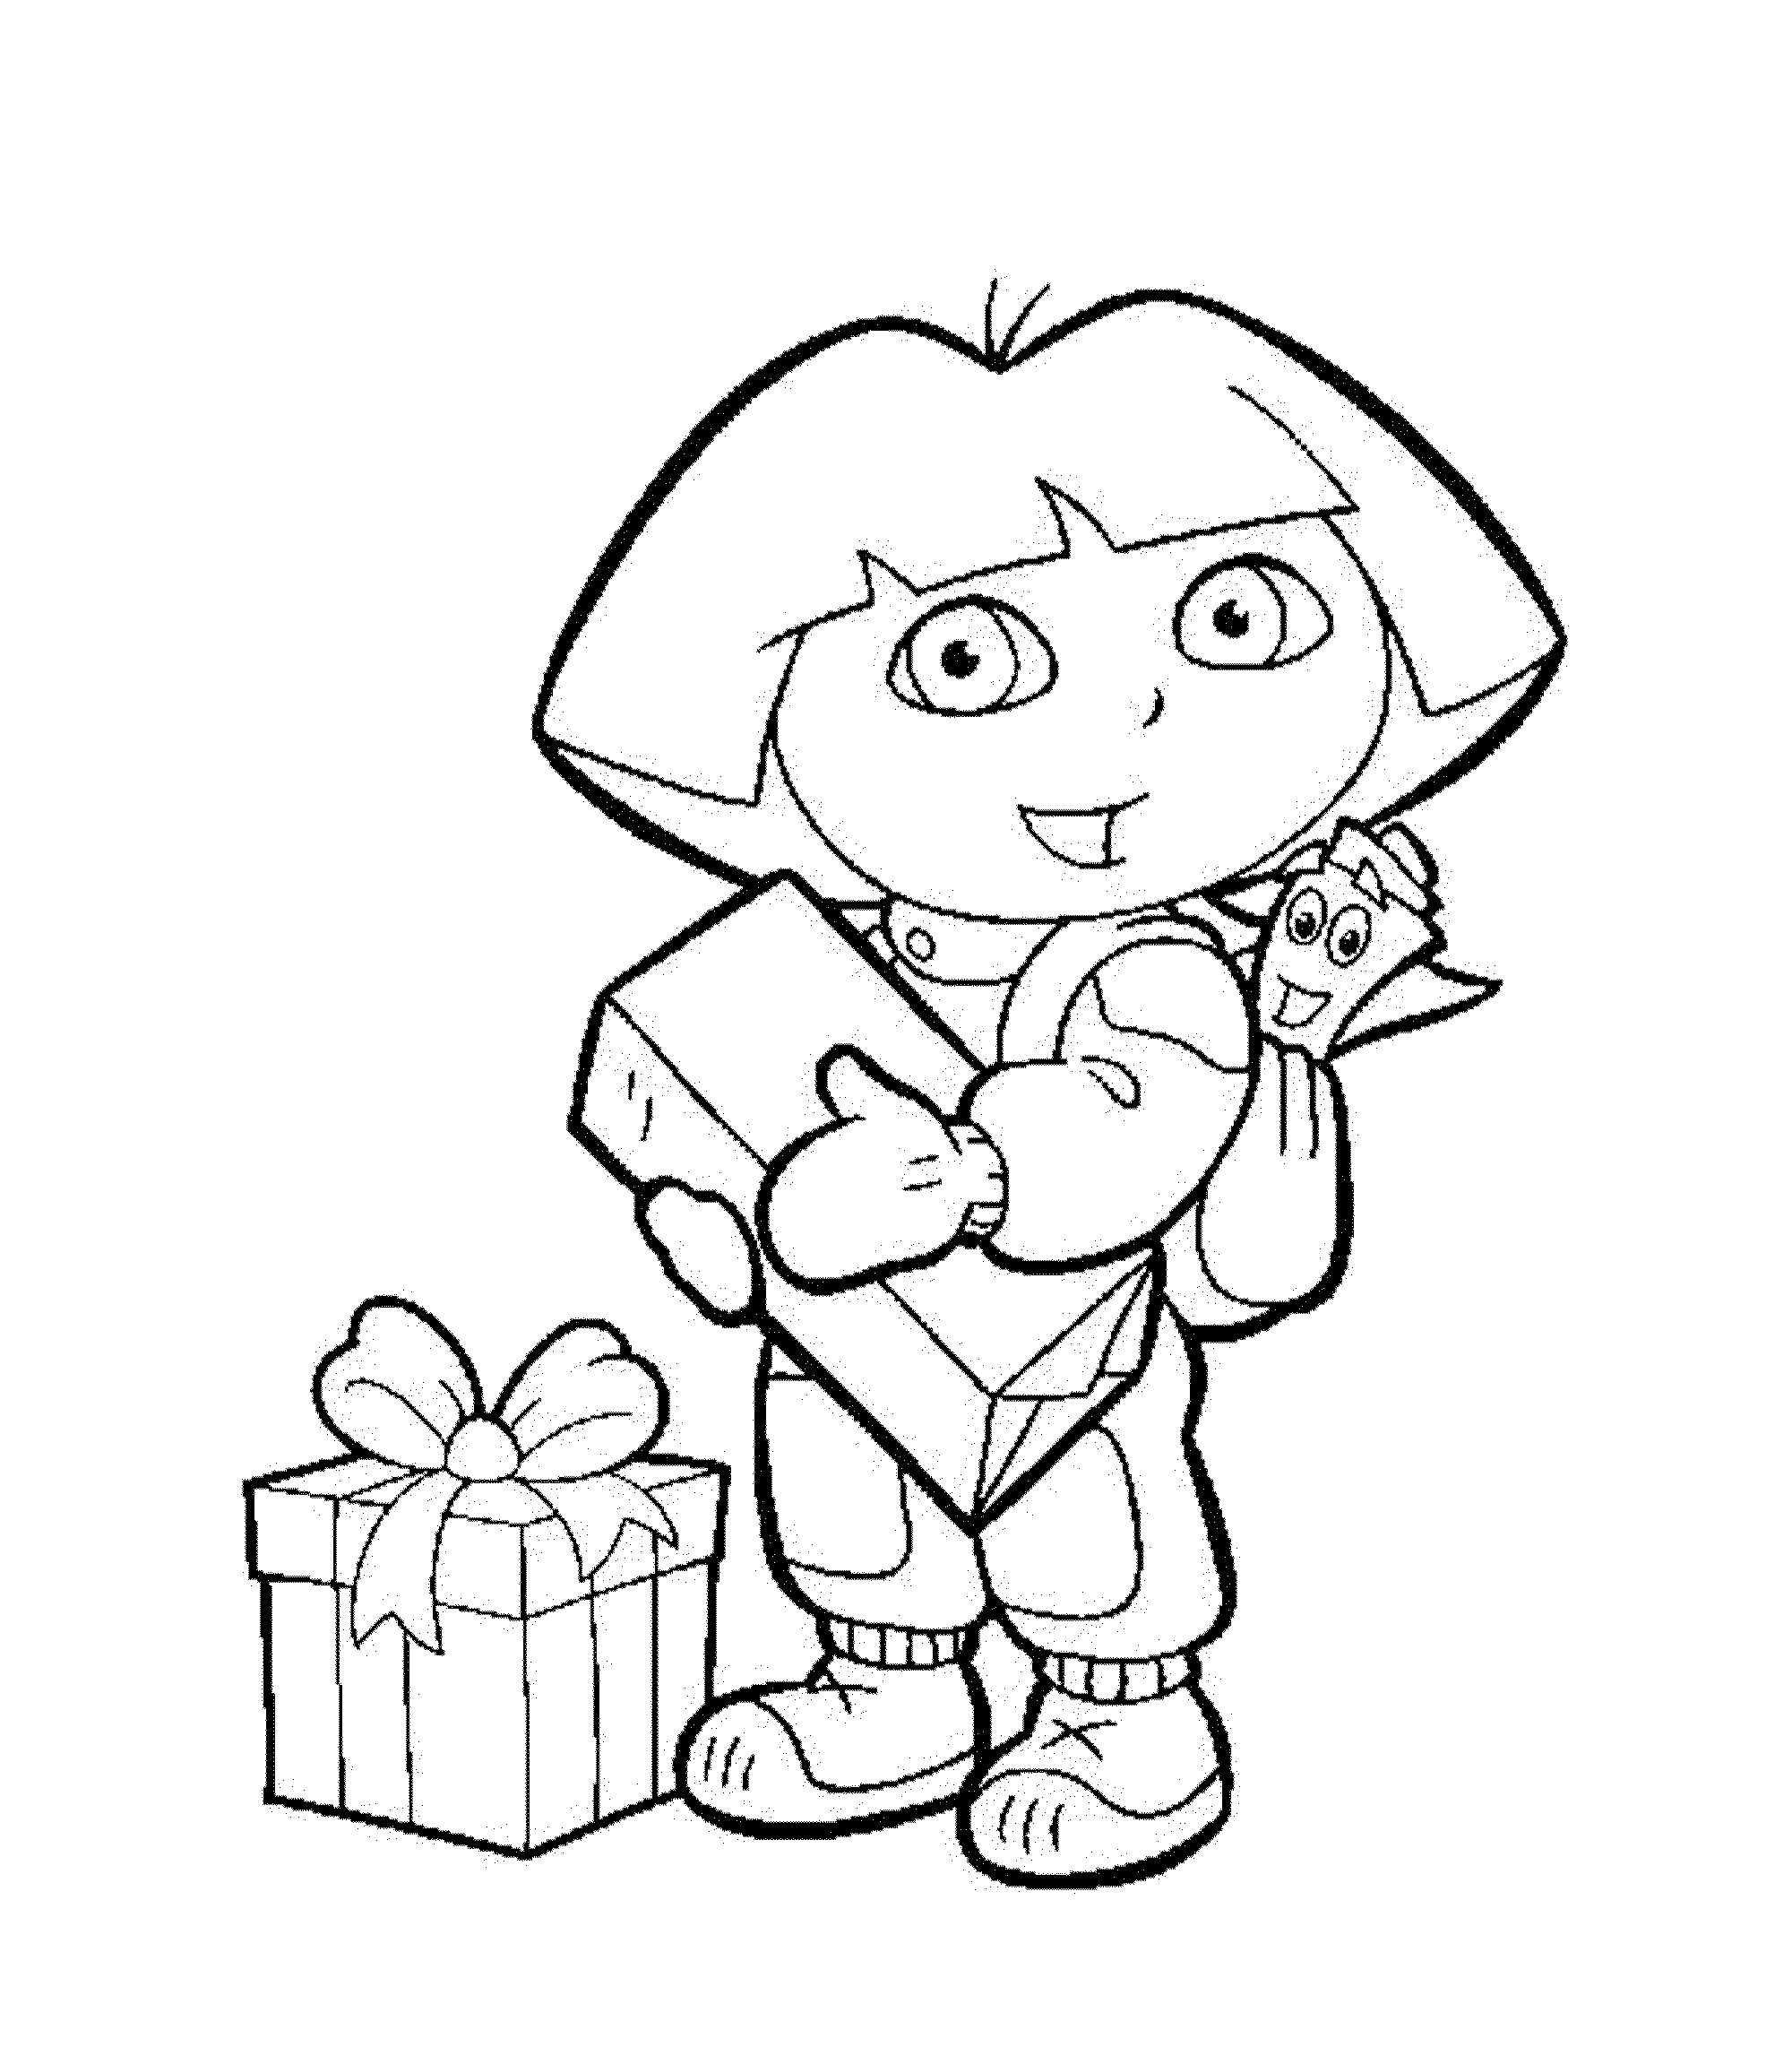 dora coloring page dora the explorer coloring pages learny kids dora coloring page